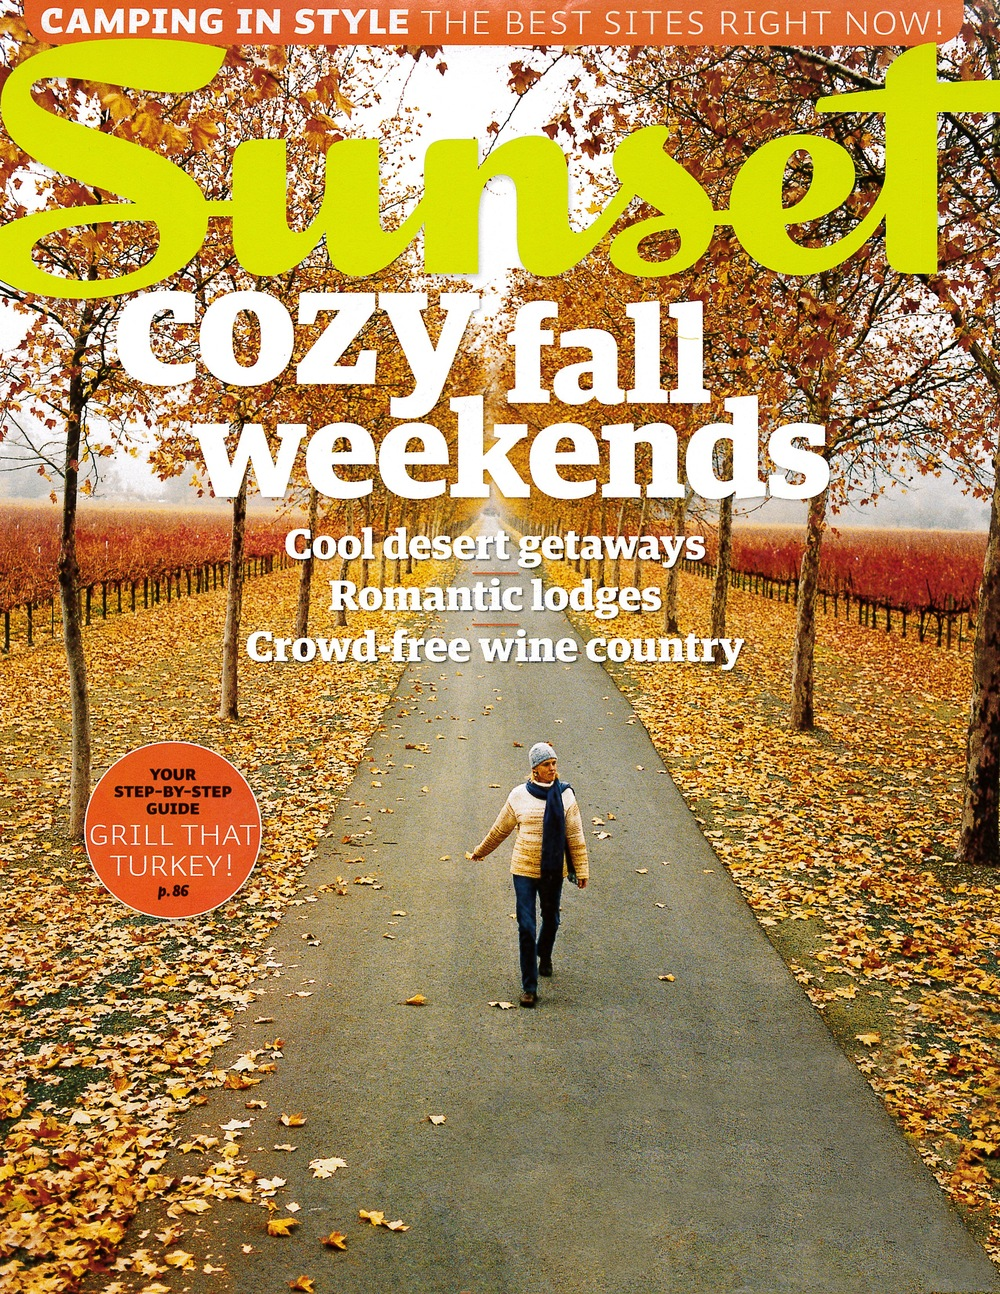 Sunset_2012_11_cover.jpg